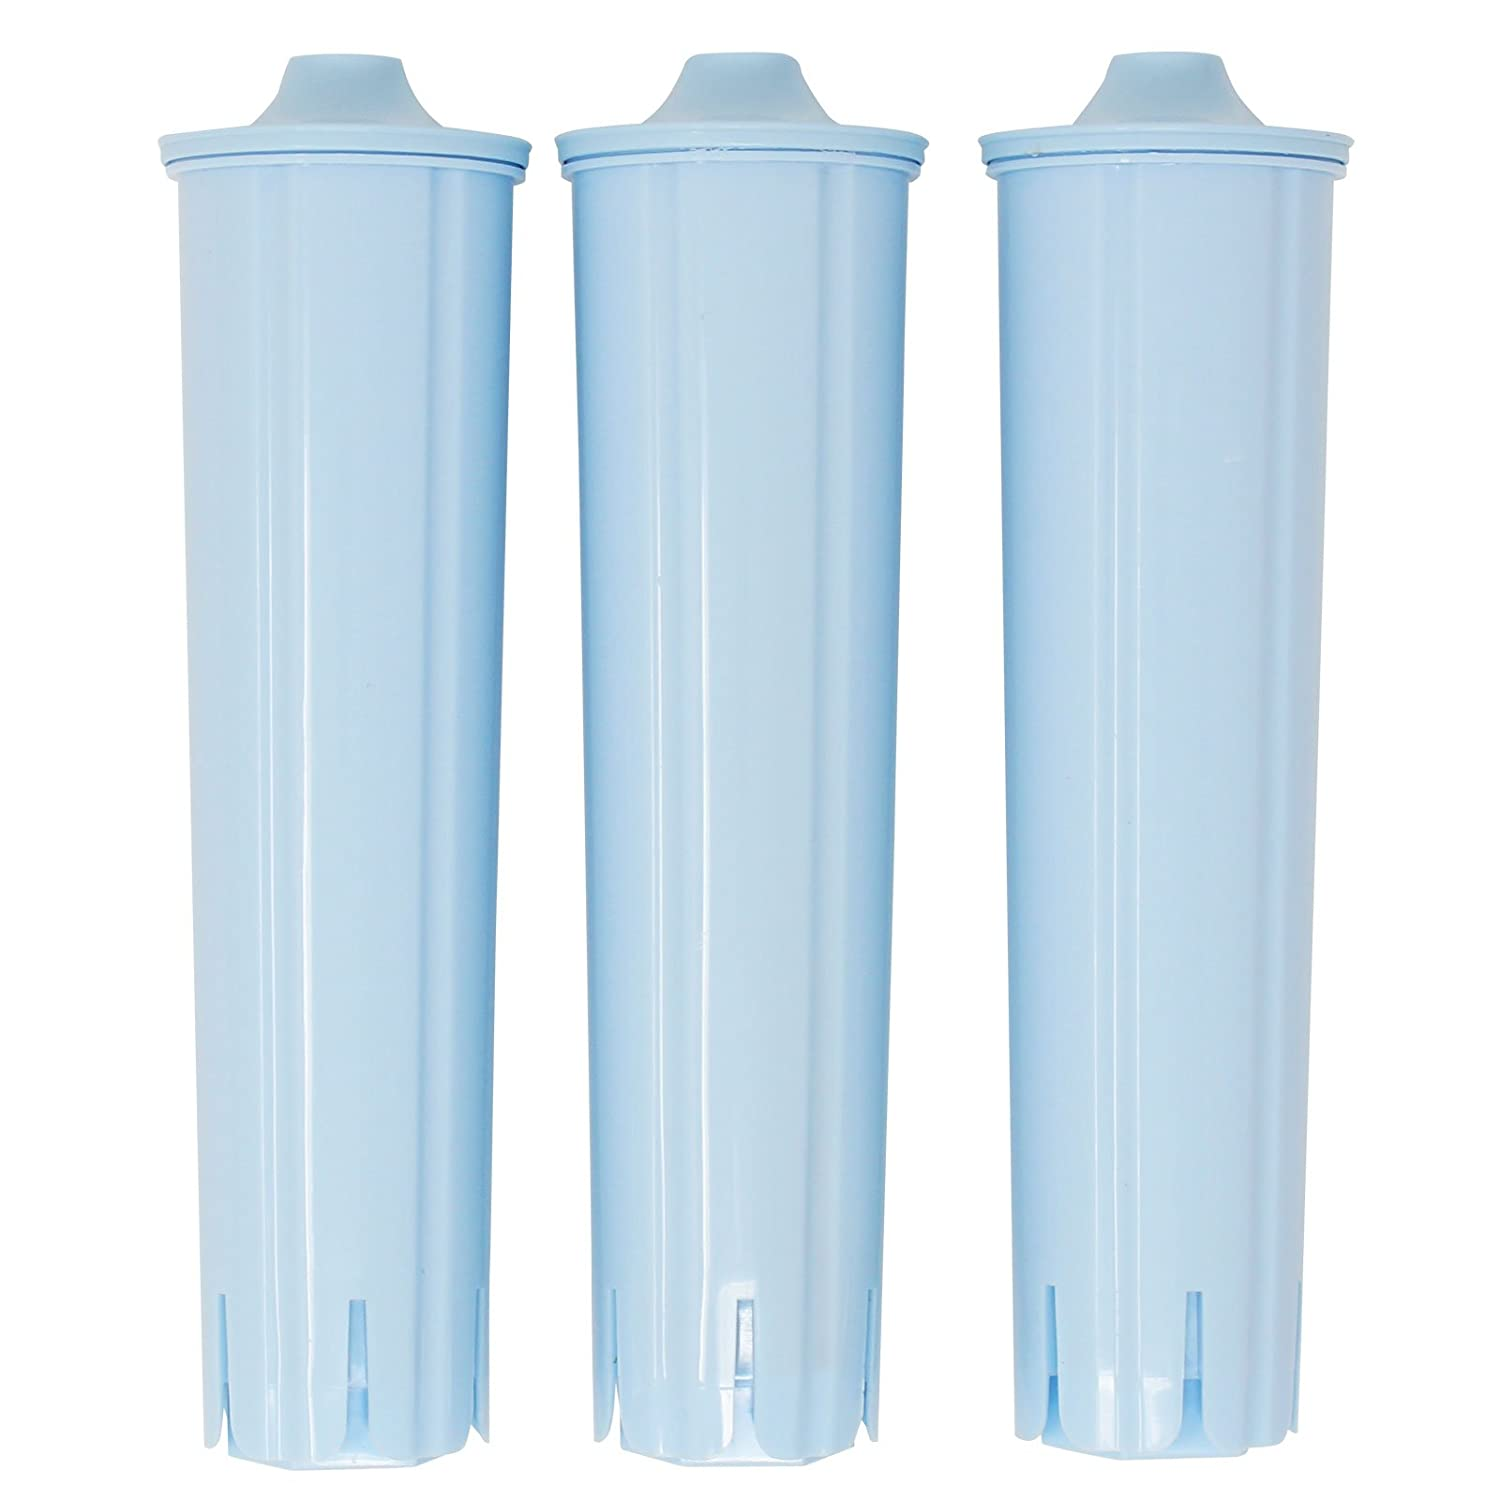 3 Replacement Water Filter Cartridge for Jura Coffee Machine - Compatible with Jura Capresso Ena 4, Jura Capresso Ena 3, Jura Capresso Ena 5, Jura Capresso Impressa F8, Jura Capresso Impressa C9 Denali Pure CF-CLEARYL-BLU